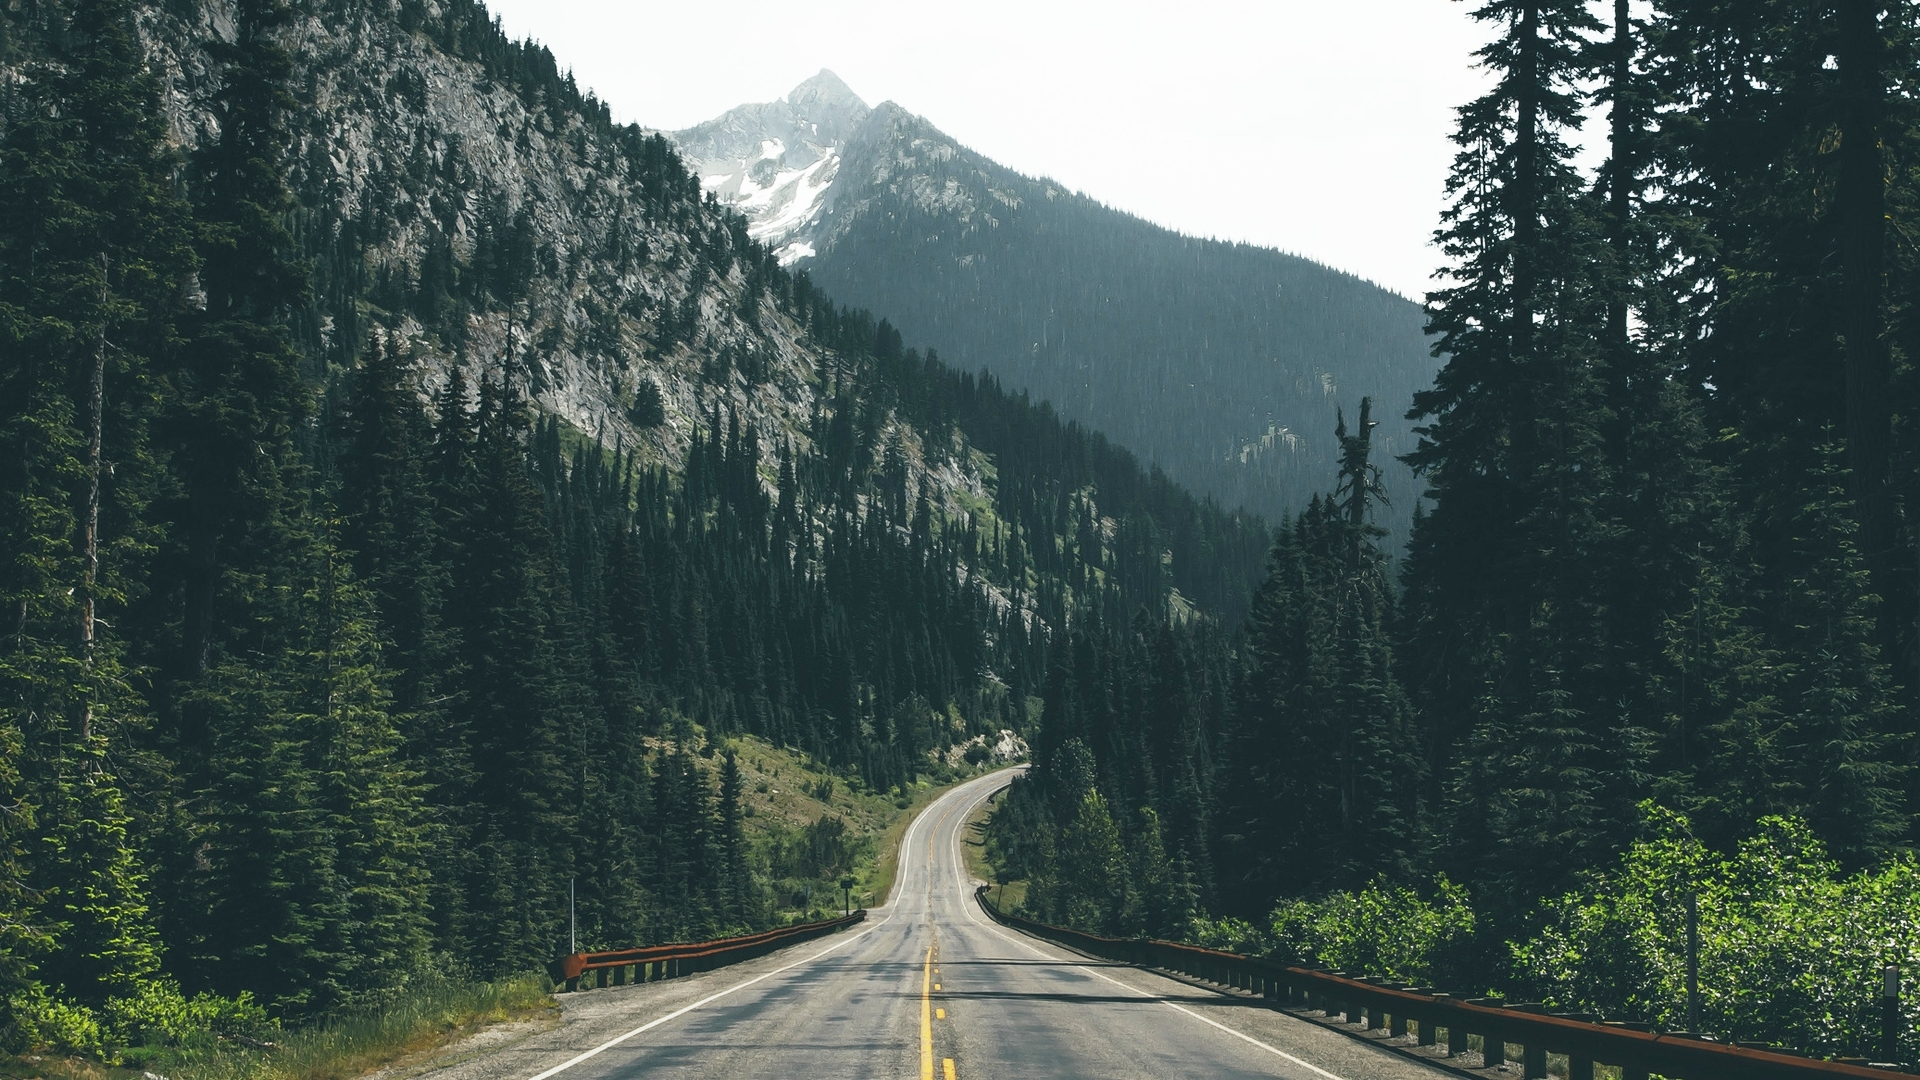 mountain road hd wallpaper background, wallpapers